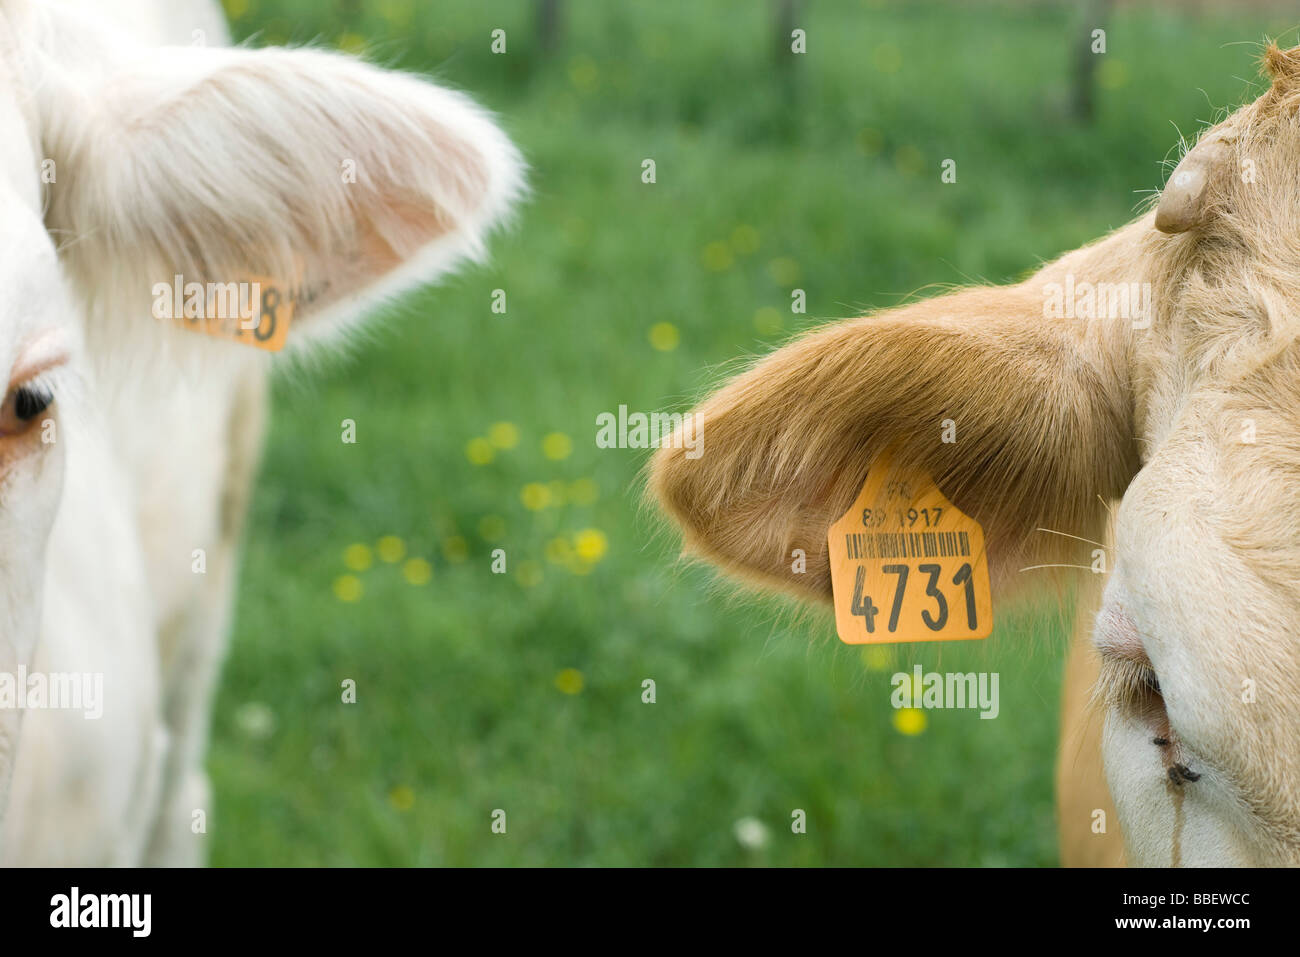 Cows with tagged ears, close-up - Stock Image